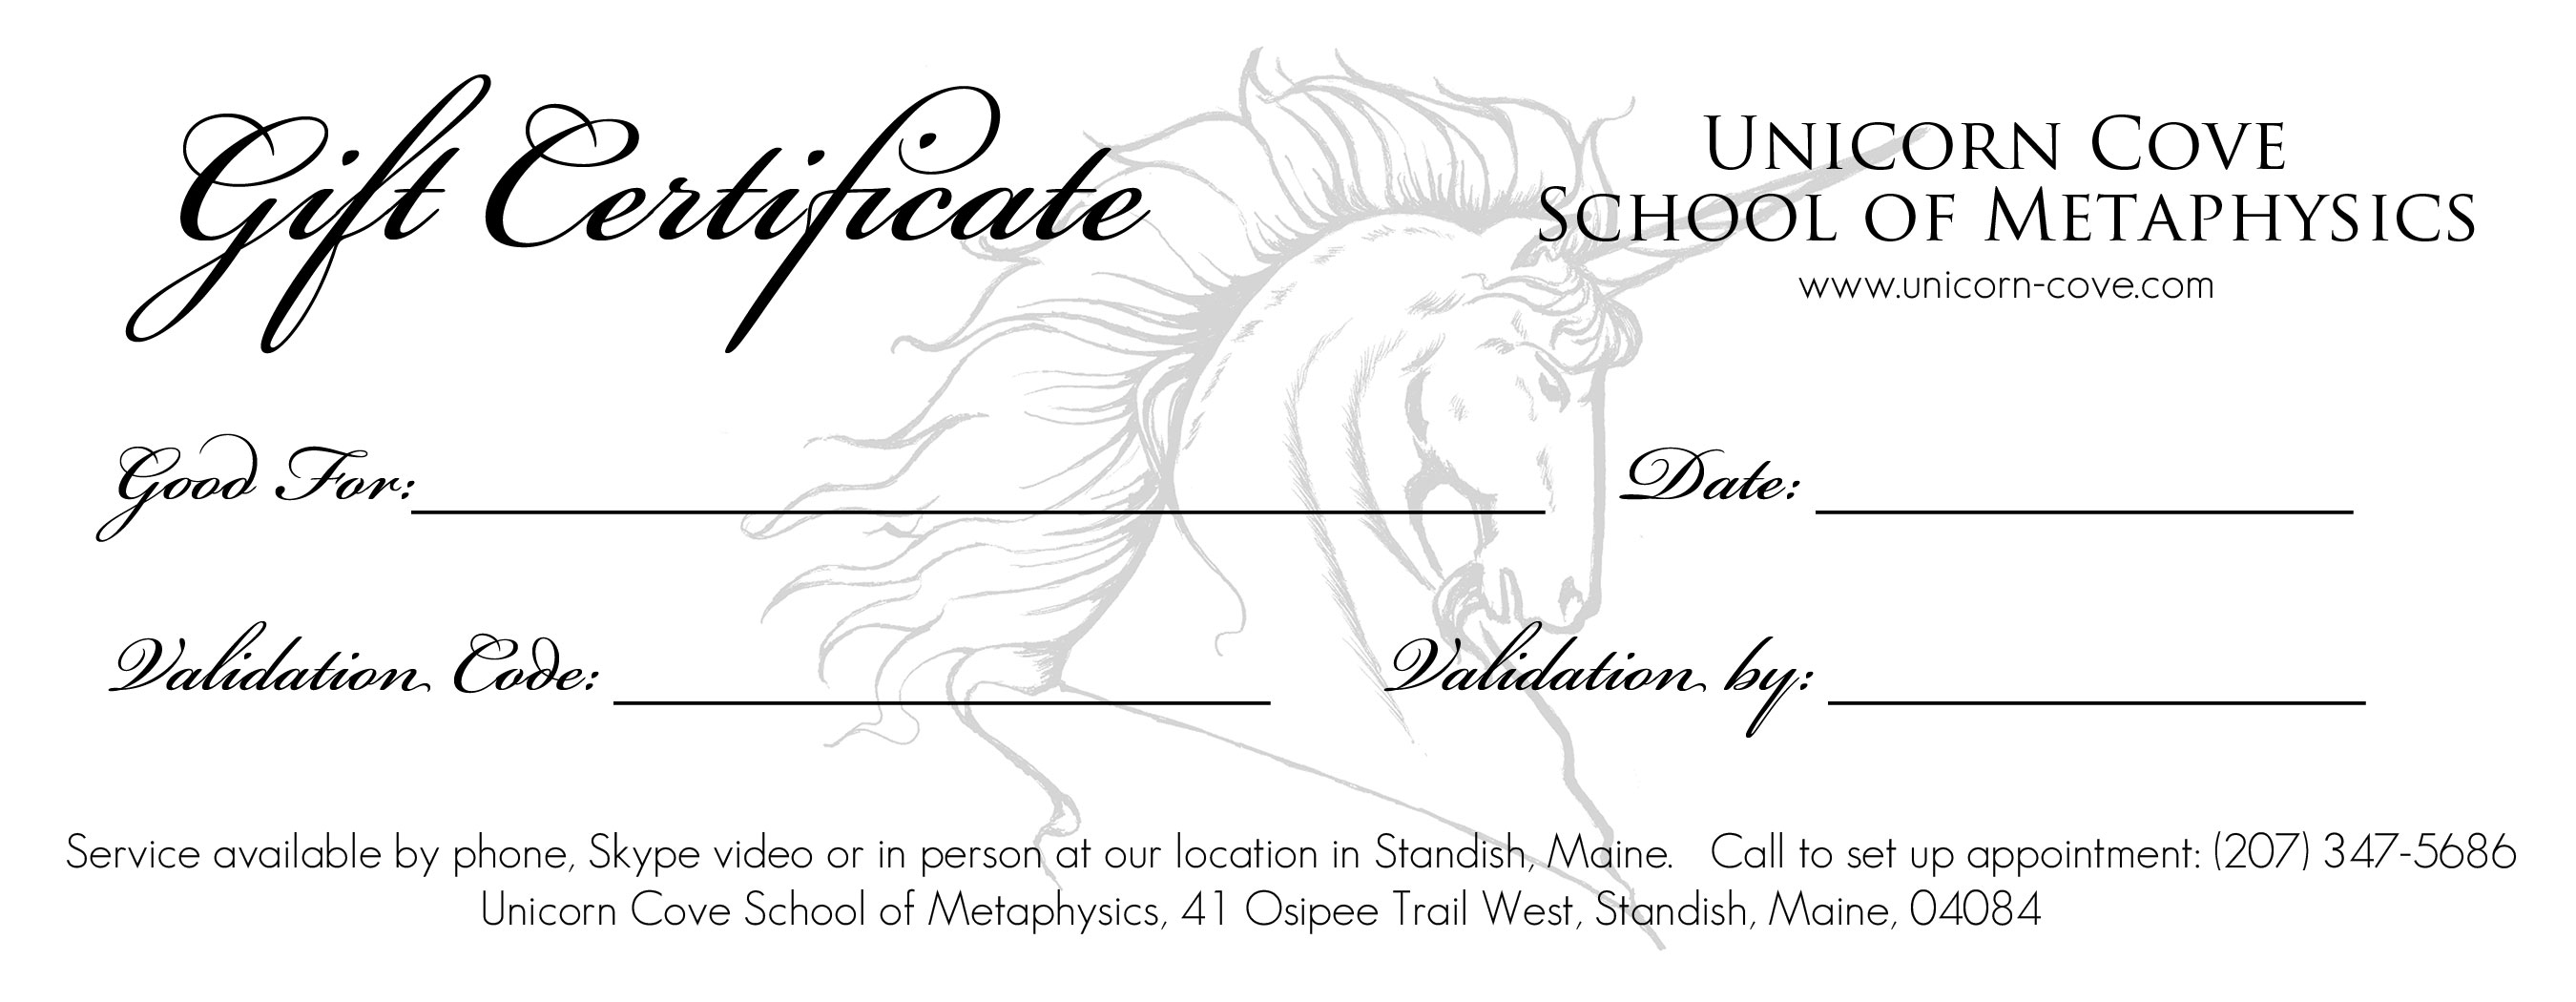 gift certificates unicorn cove school of metaphysics gift certificate